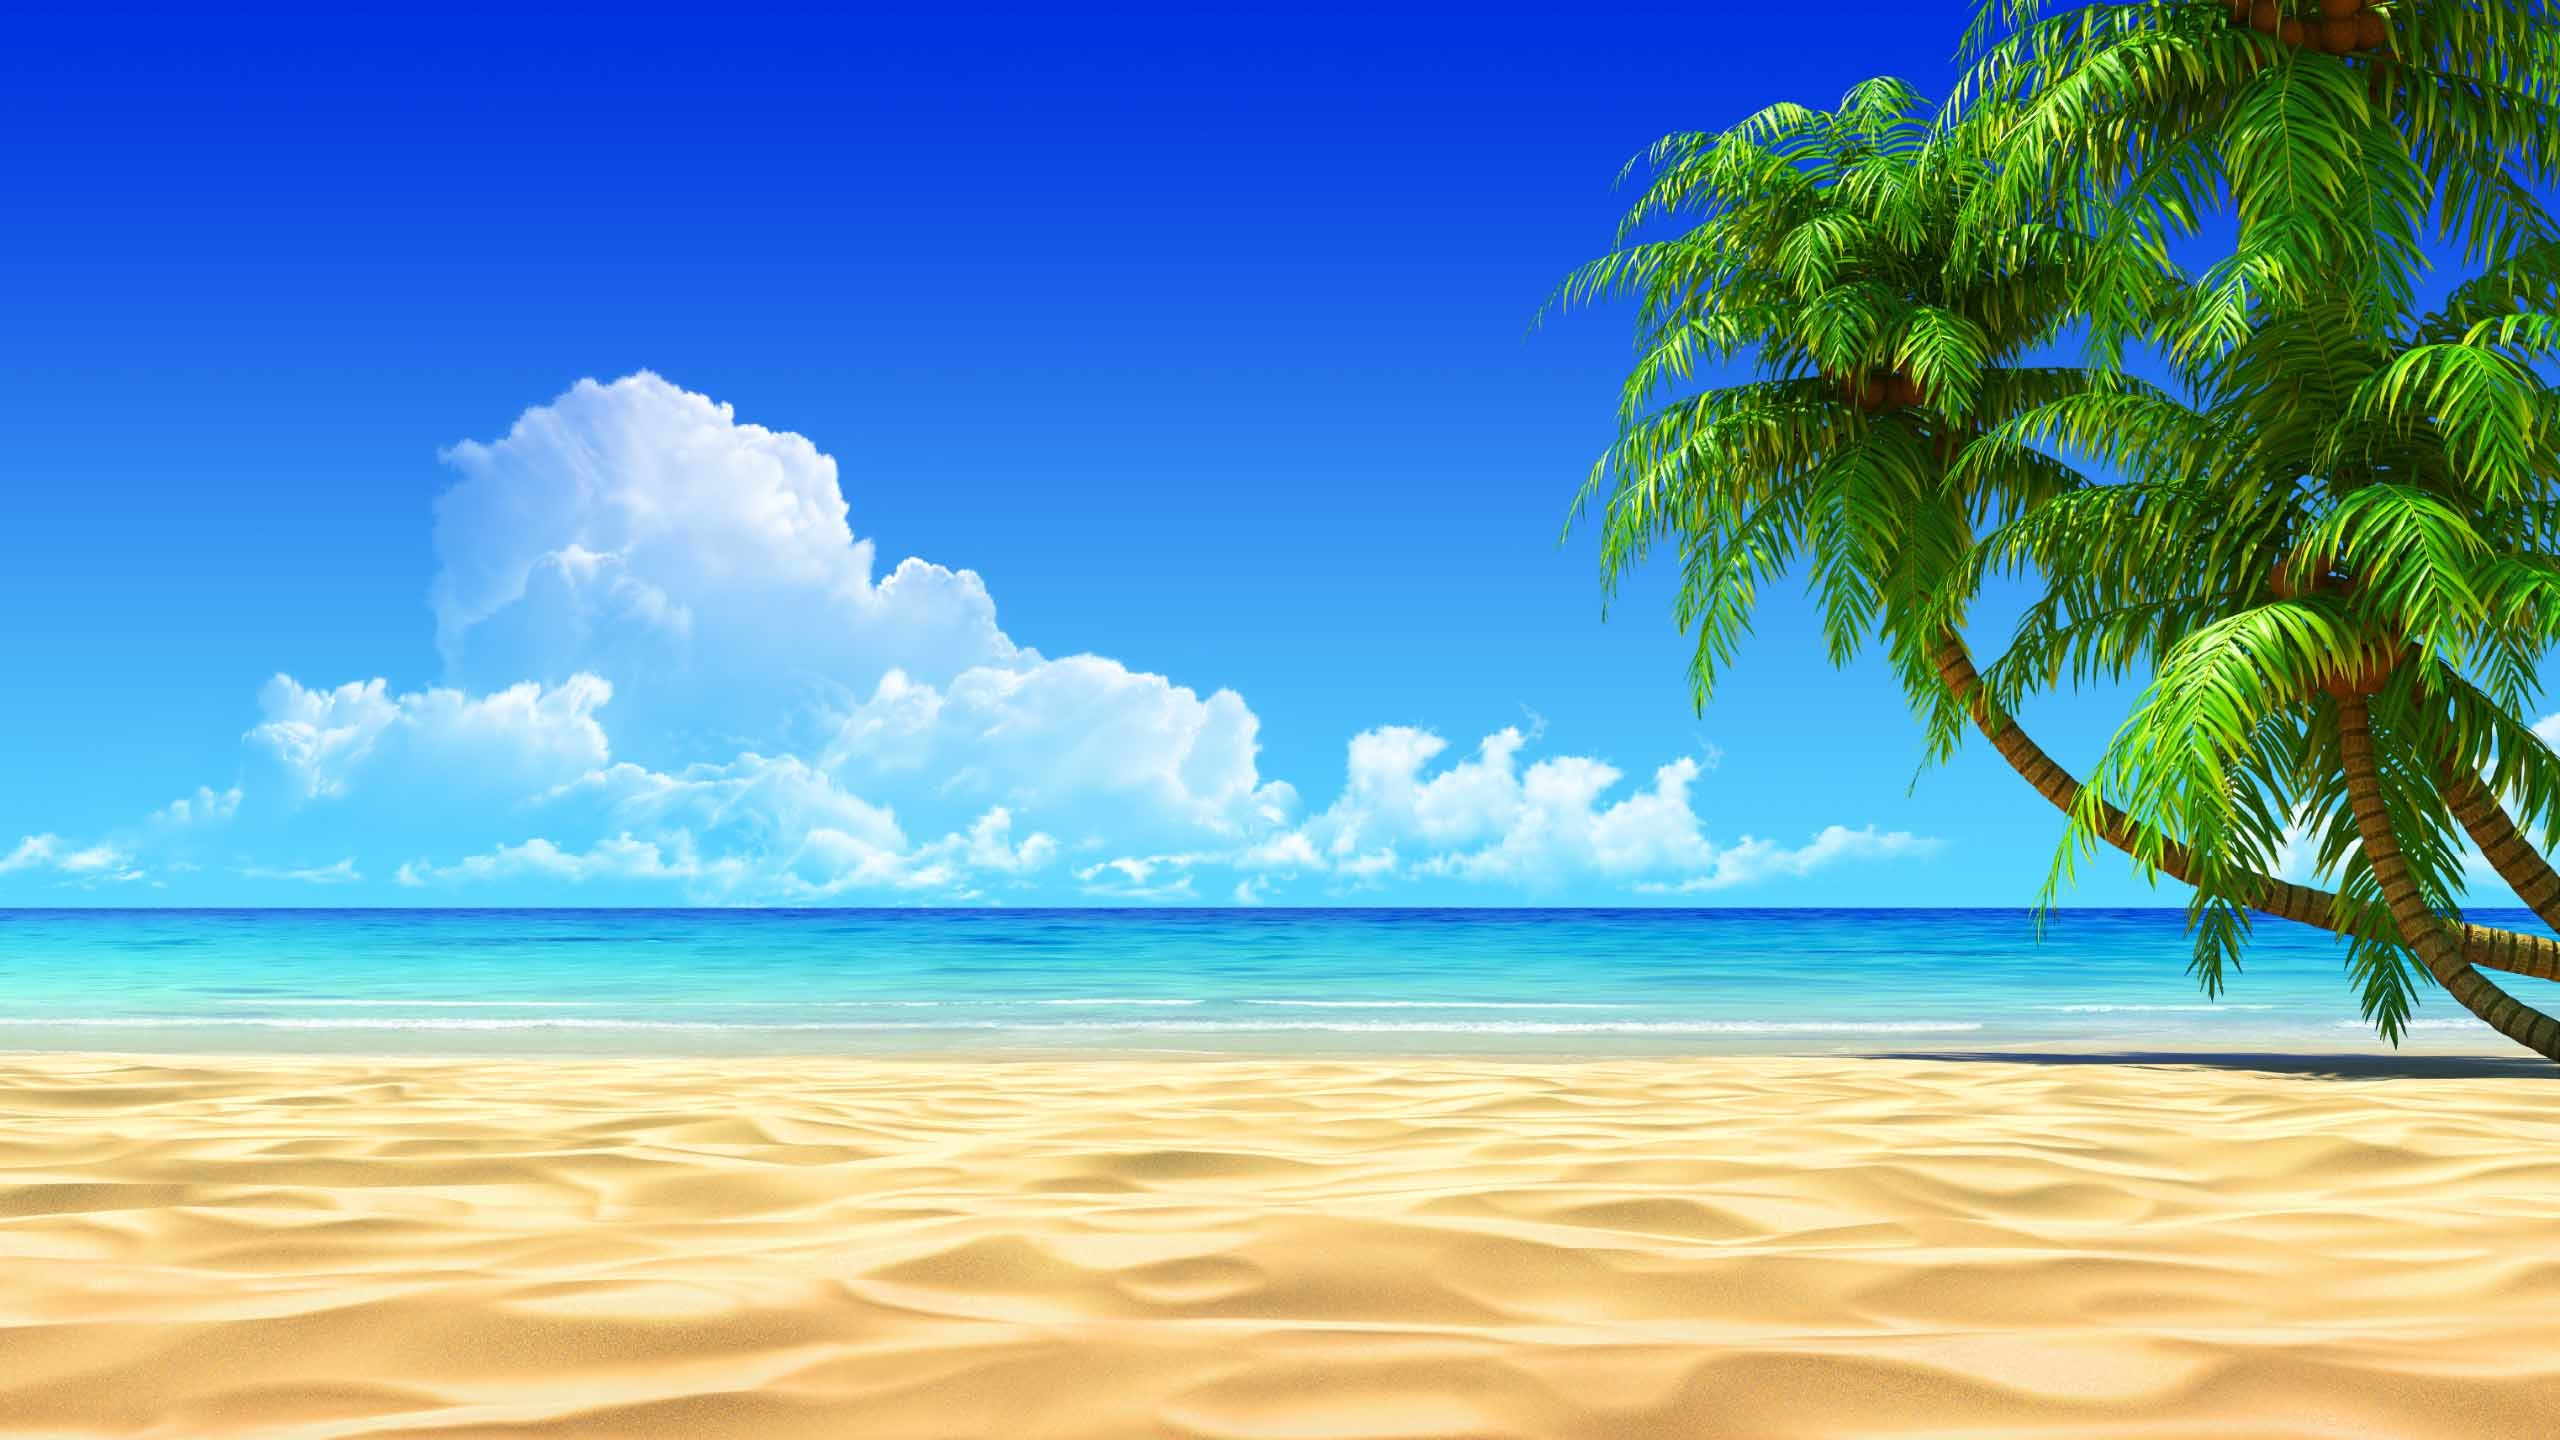 Beach Wallpaper for Computer 54 images 2560x1440